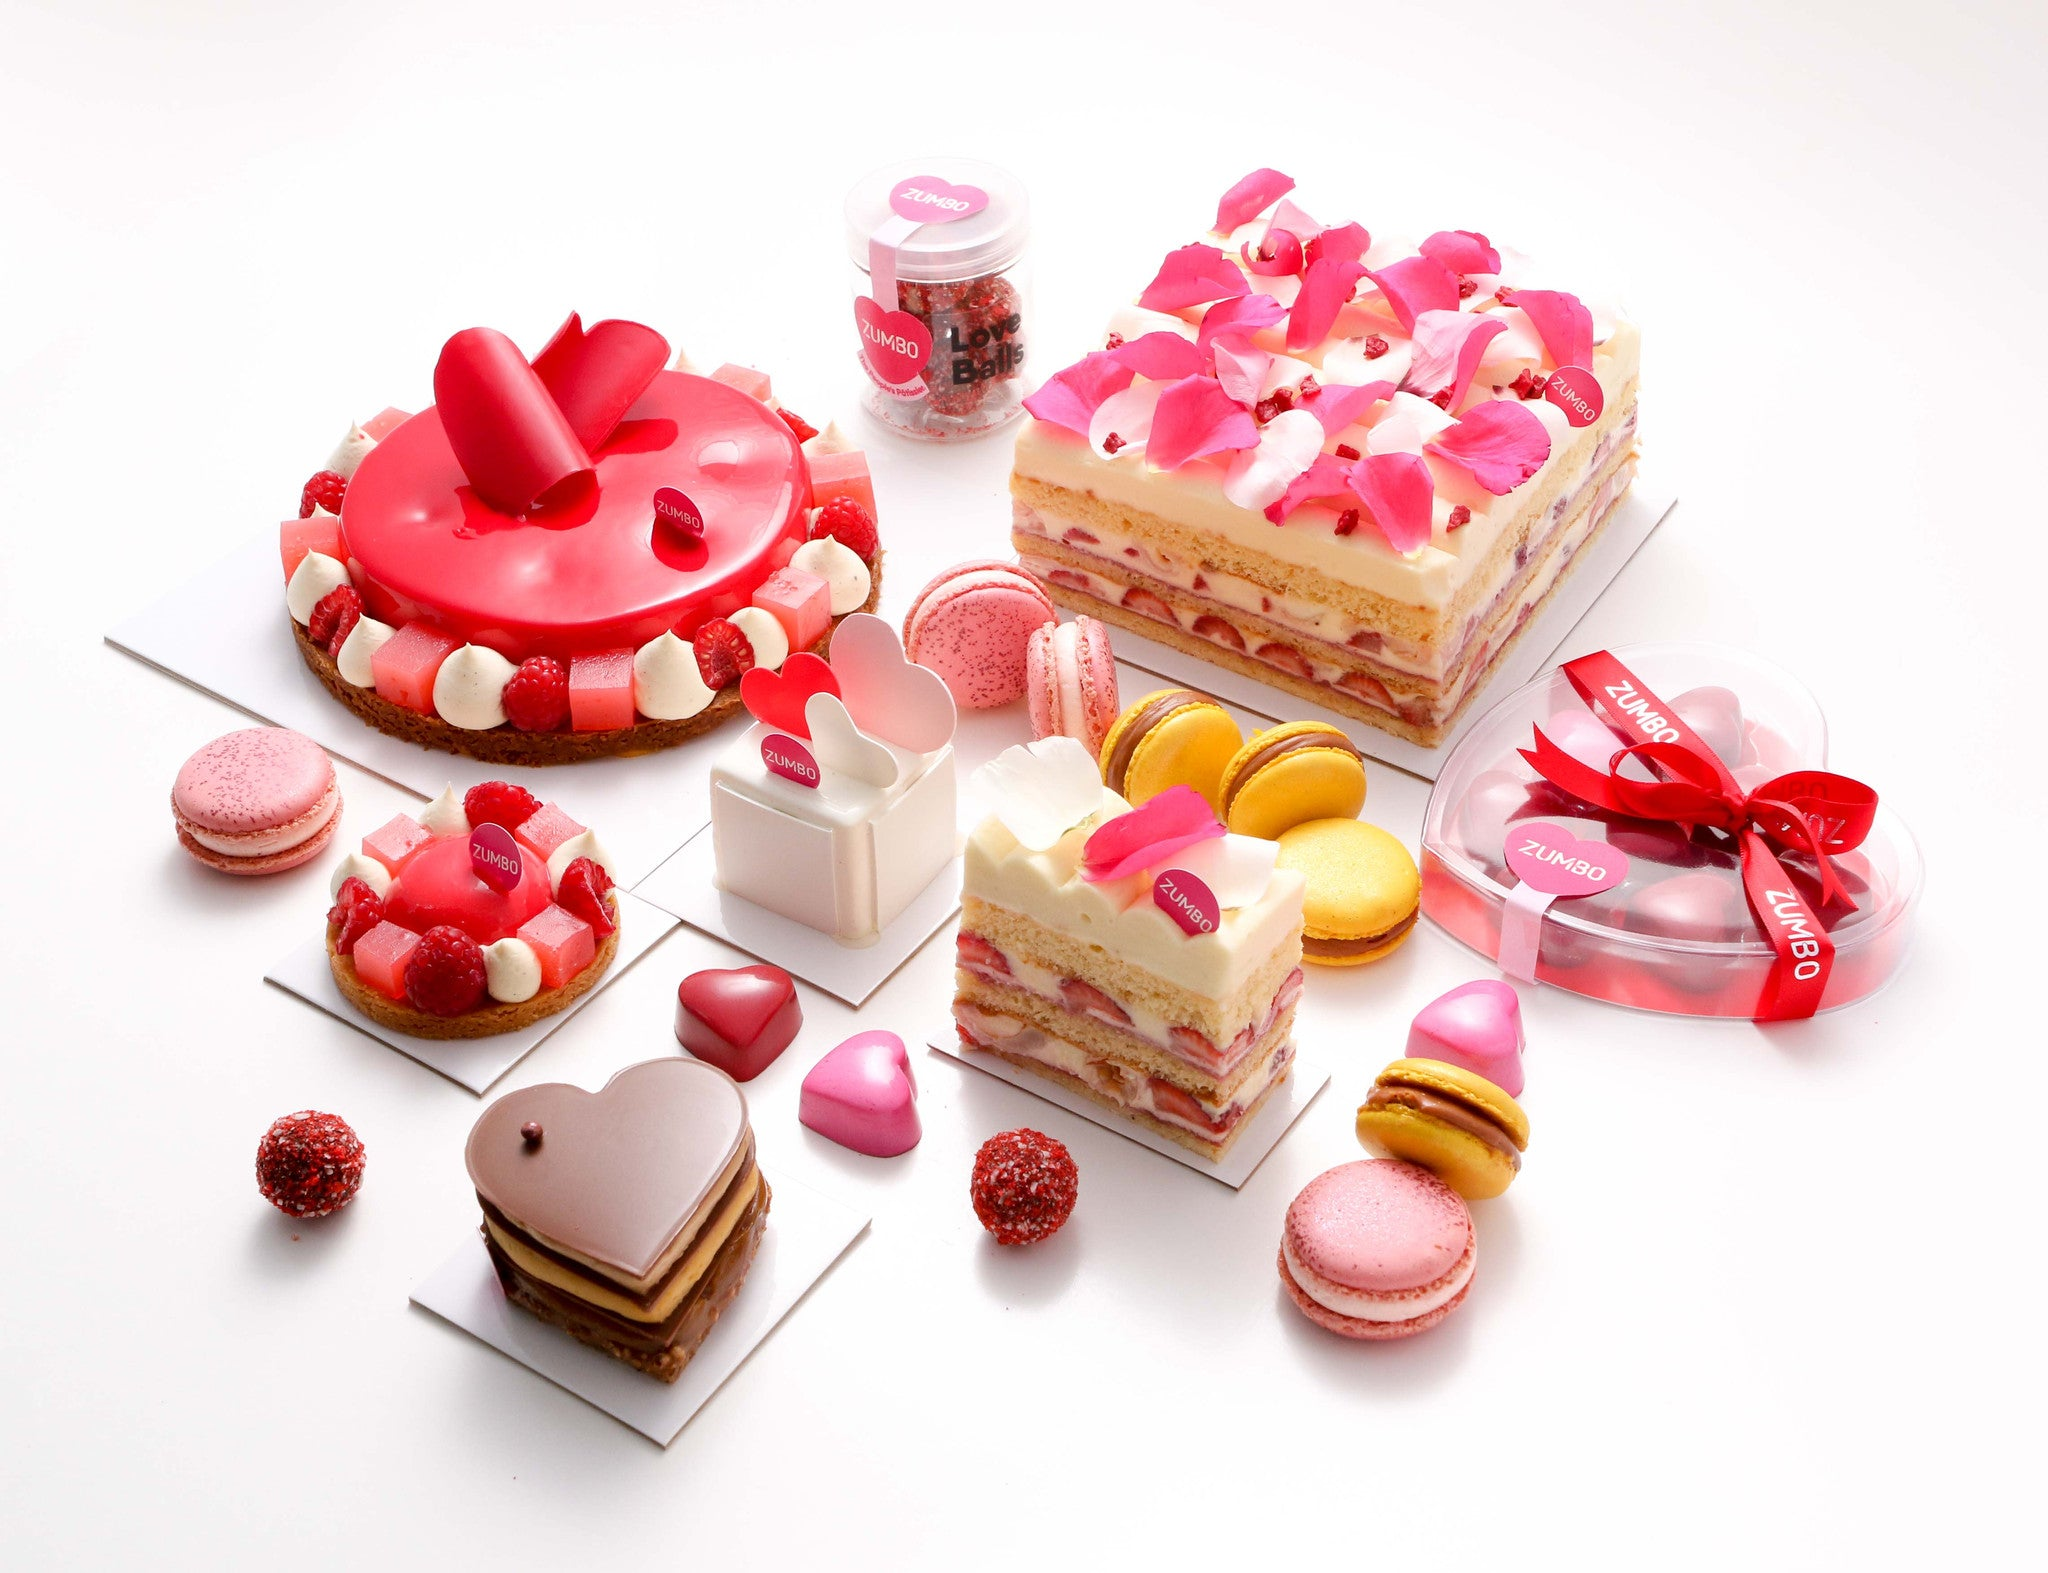 Seduce your sweetheart with the touch and taste of Heilala Vanilla and Zumbo this Valentine's Day